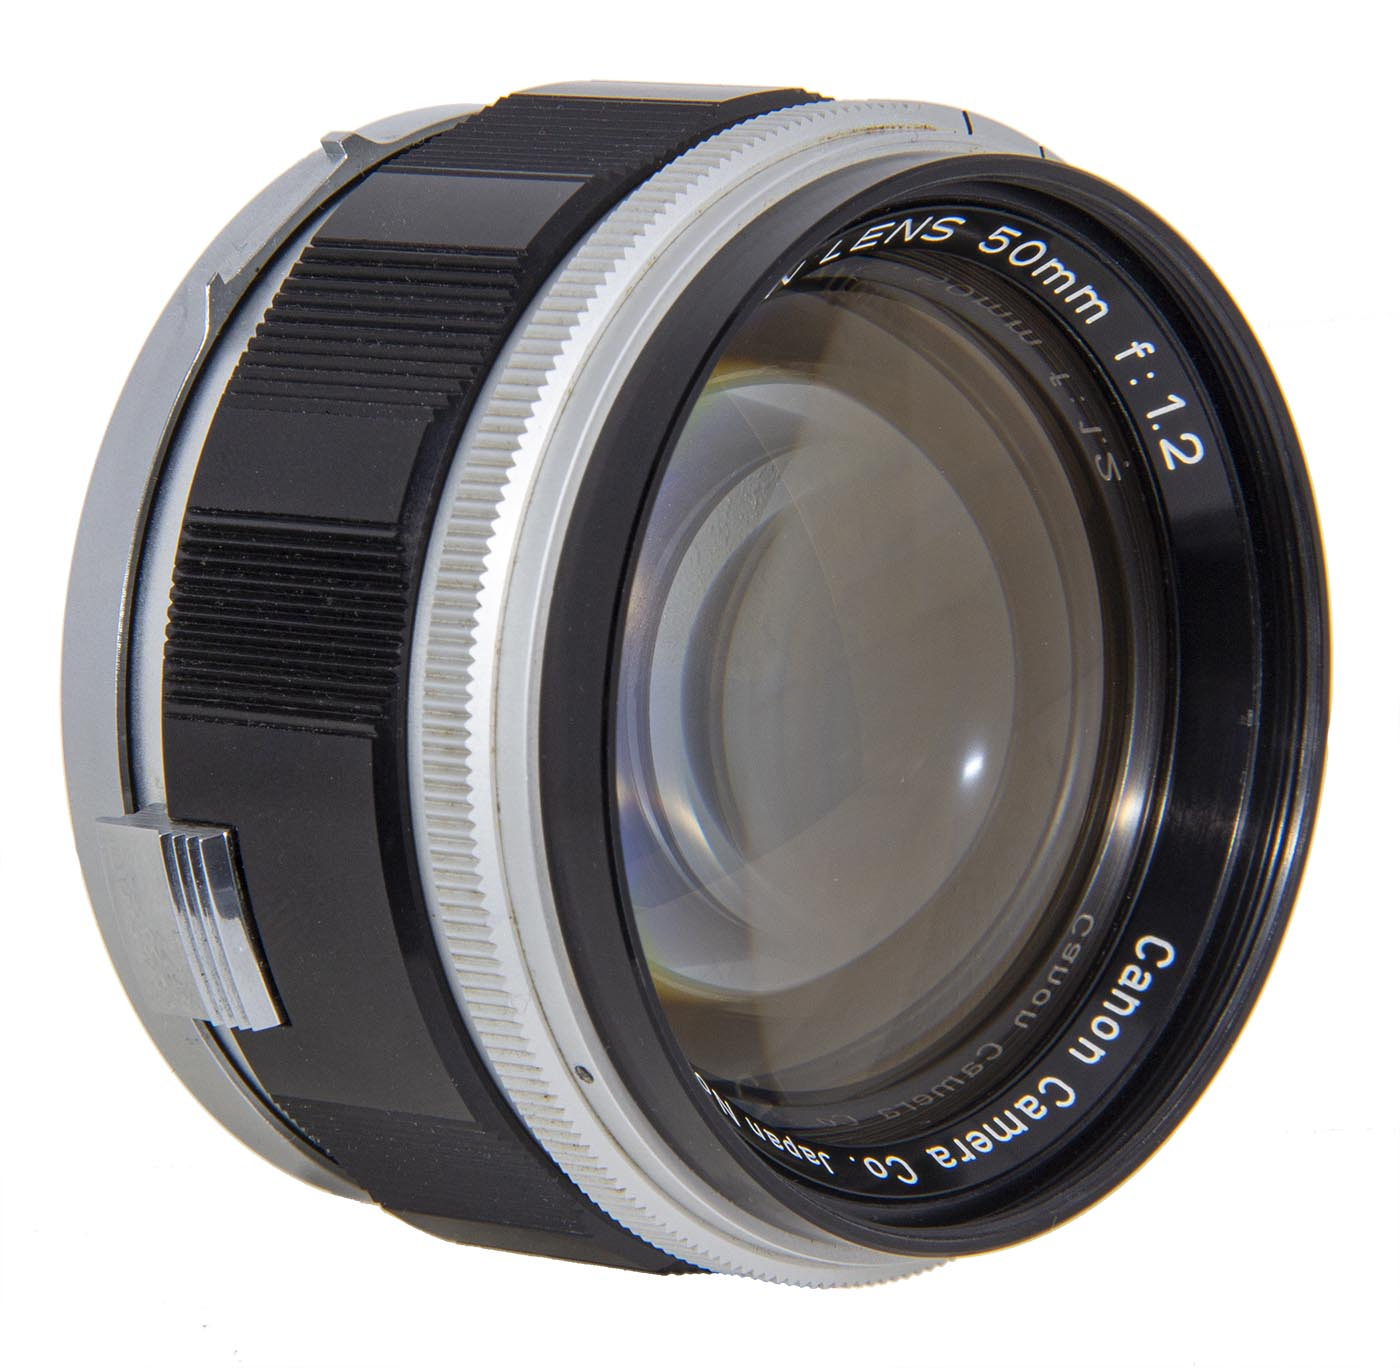 Canon S 50mm f/1.2 Lens